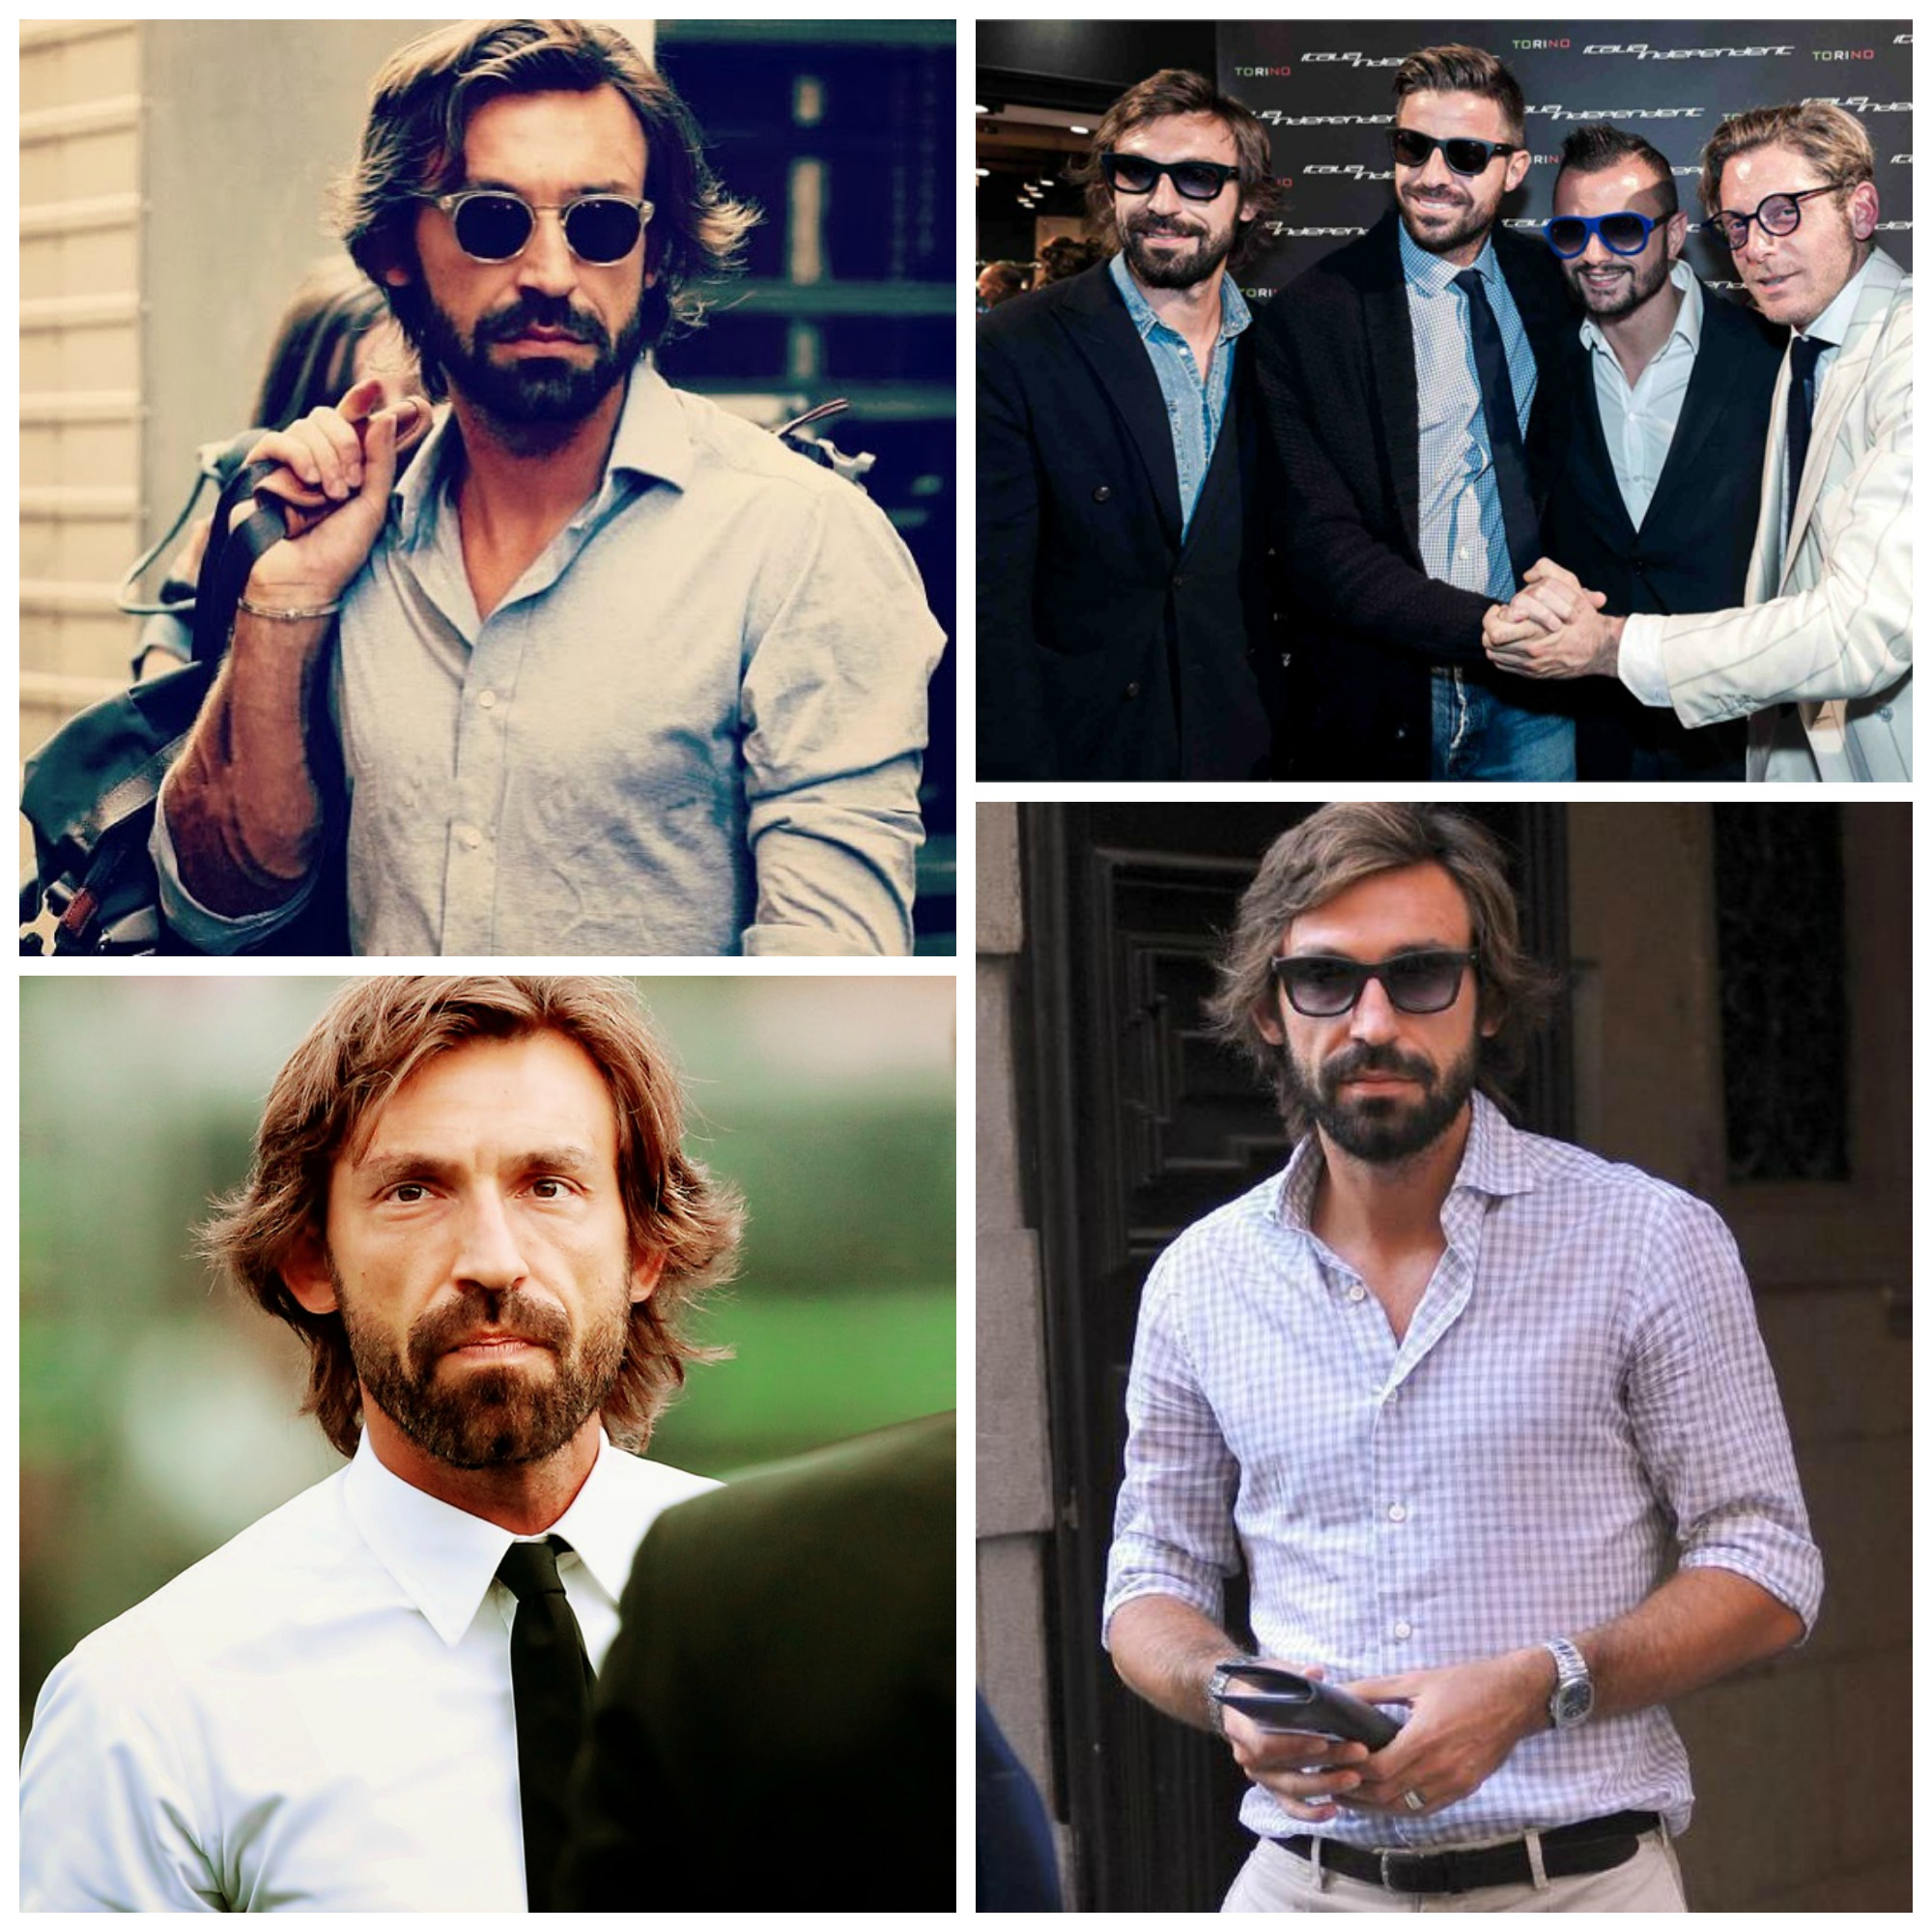 Dressed up Pirlo